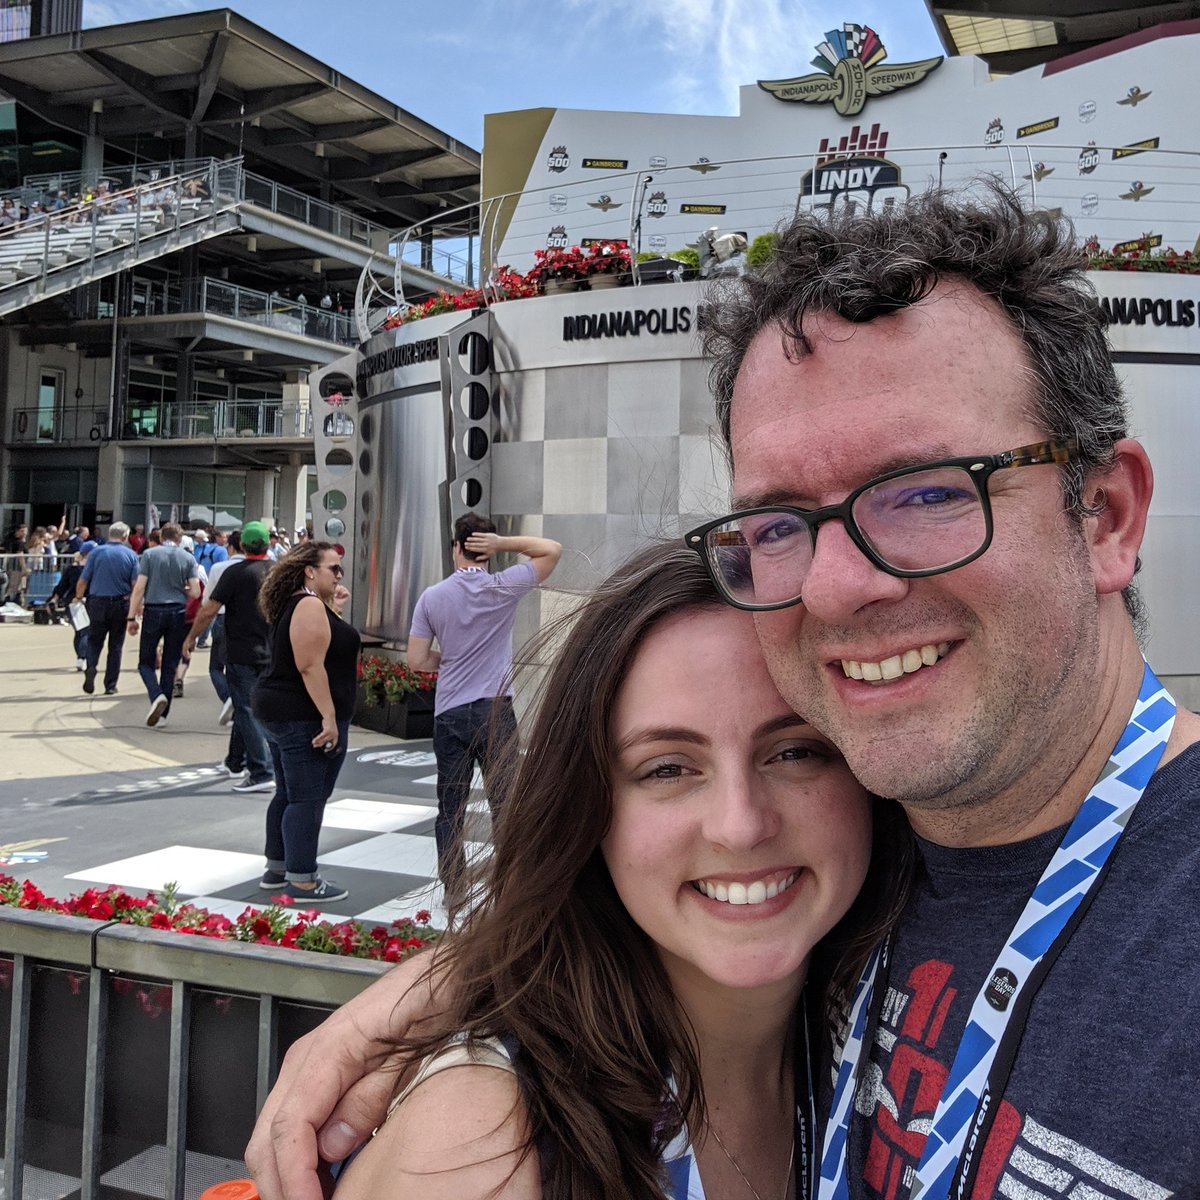 Checking out victory lane with @GoSmile #ShareASmile #ThisIsMay #Indy500 https://t.co/09syZW2ldg